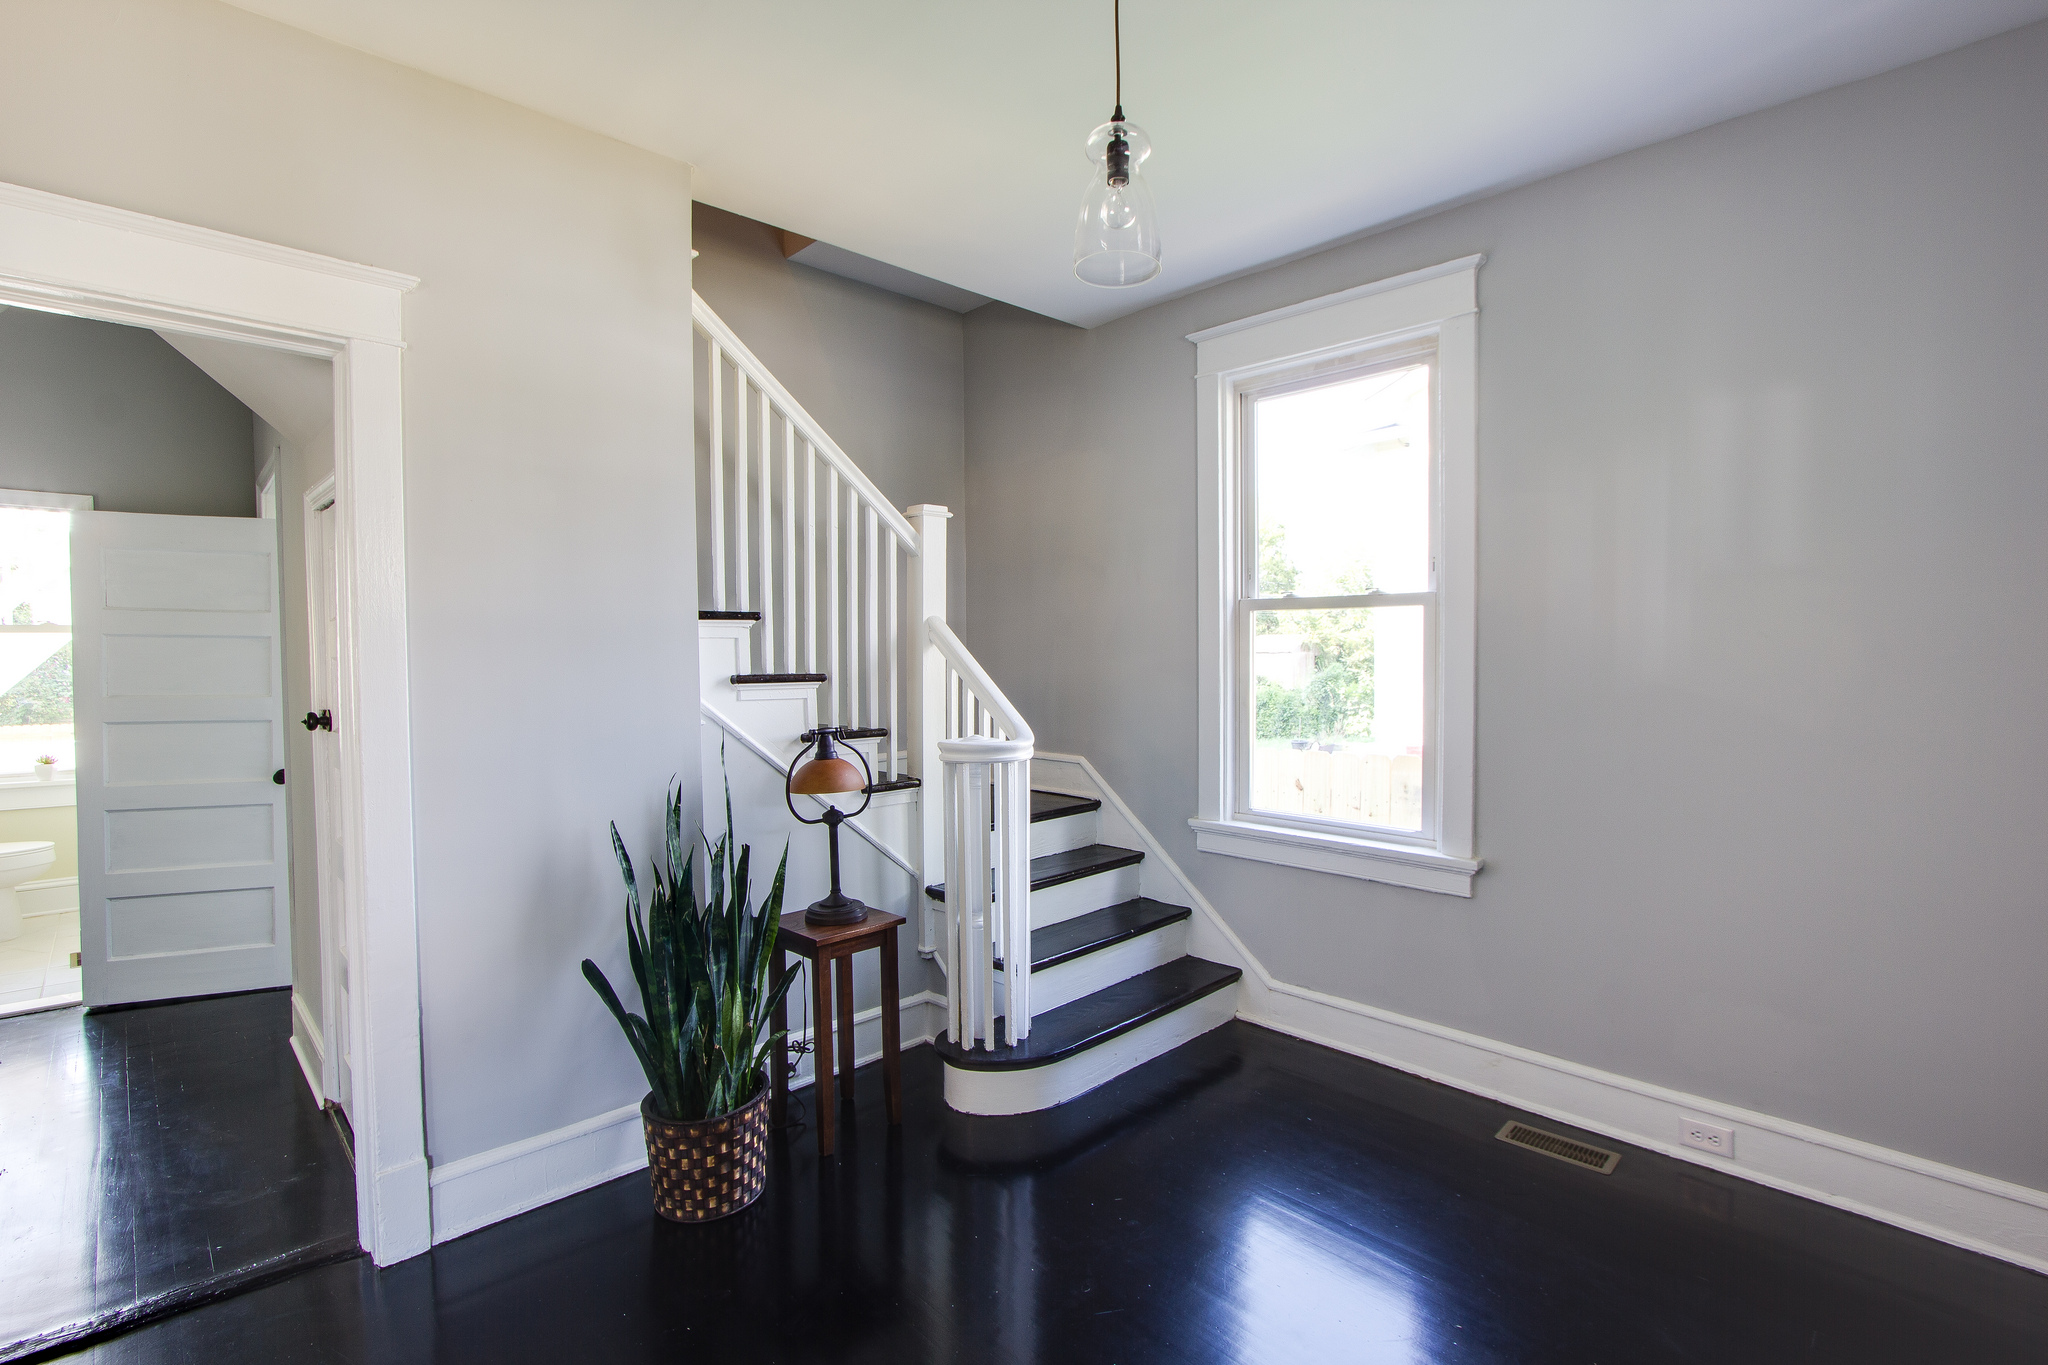 Remodelaholic | Renovating for an Inviting Entryway